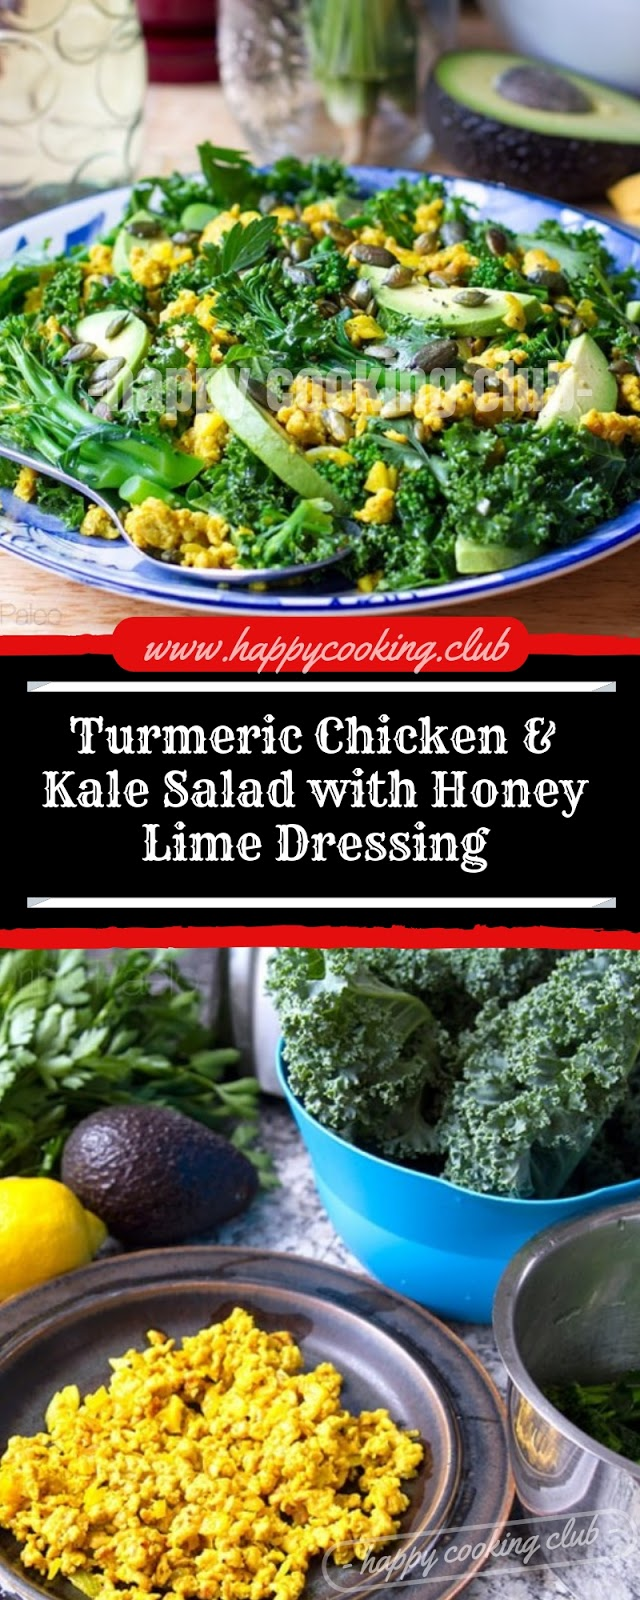 Turmeric Chicken & Kale Salad with Honey Lime Dressing